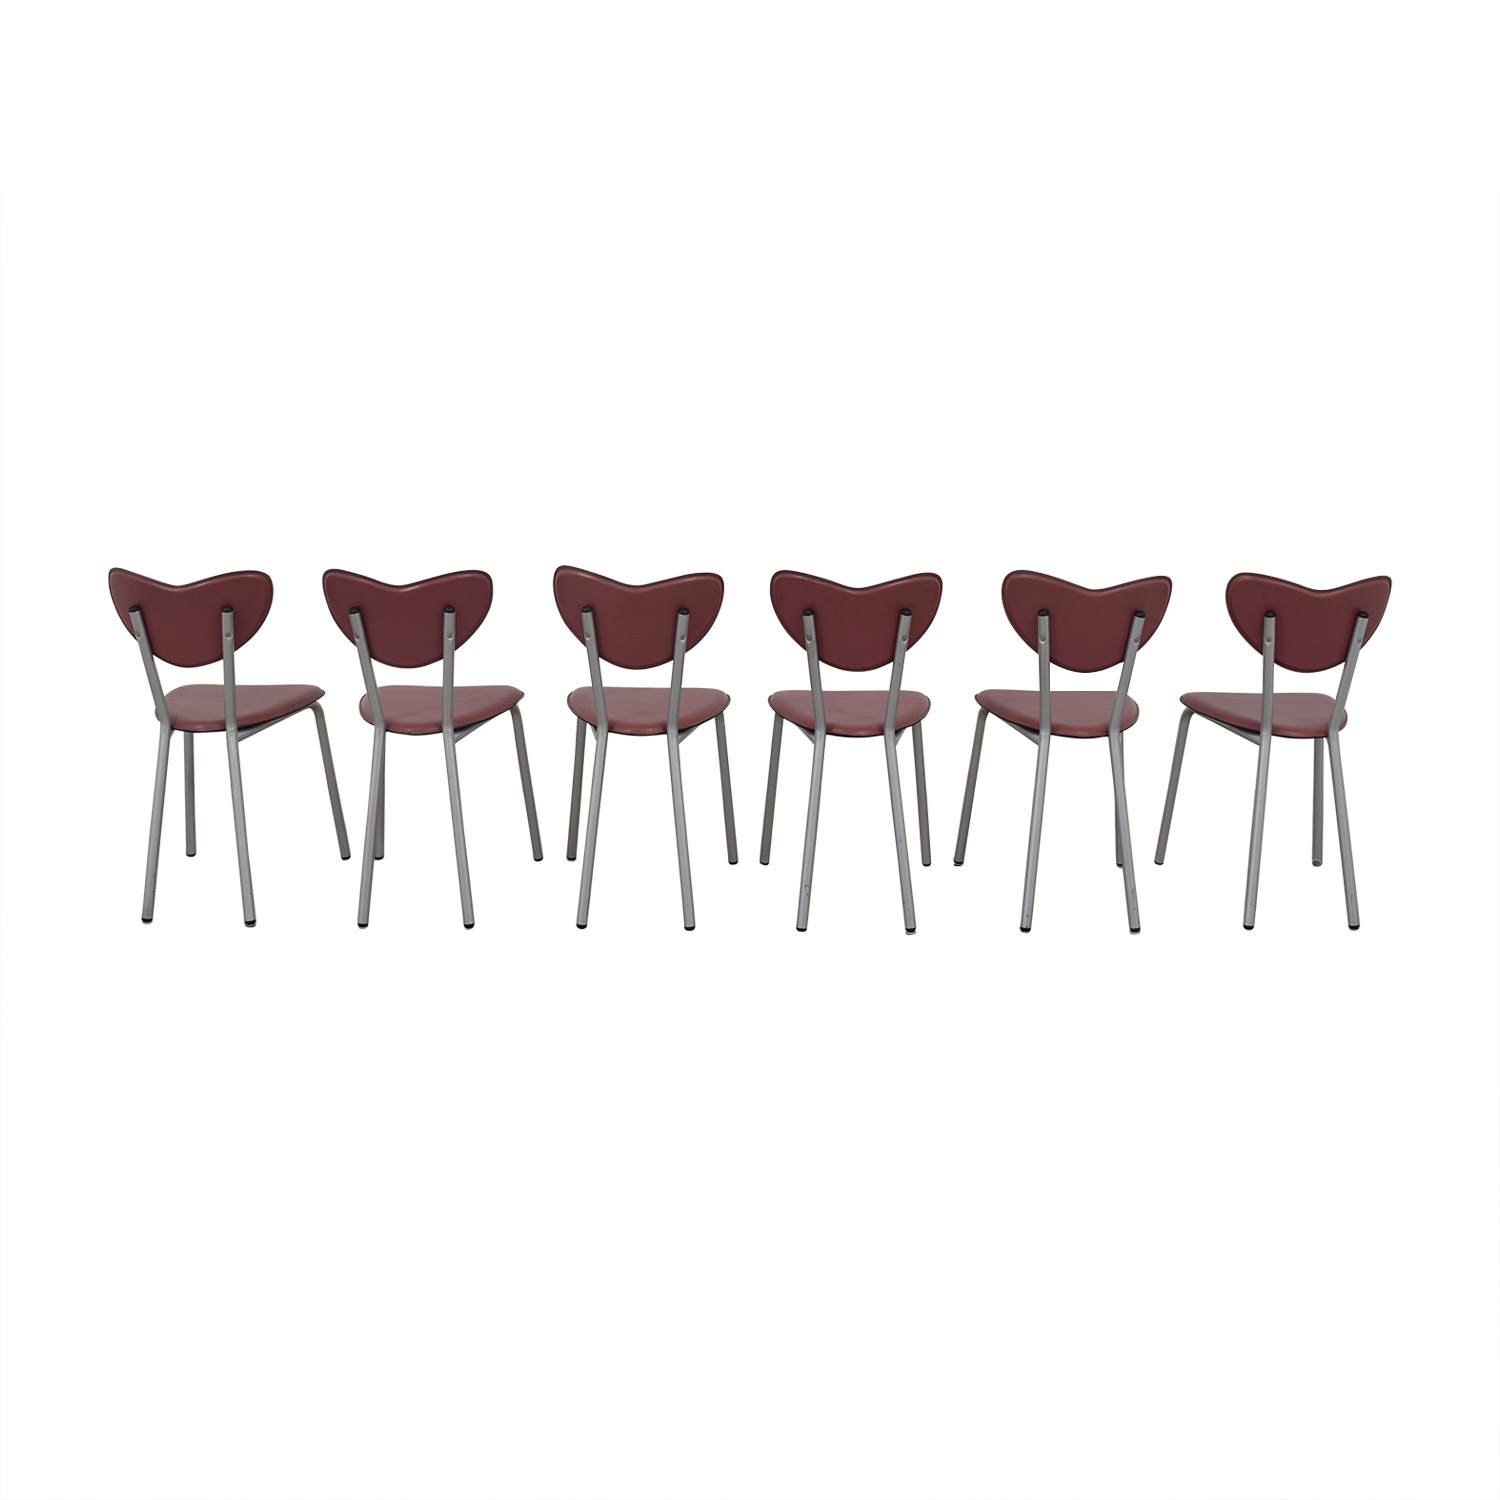 Pellizzoni Pellizzoni Modern Dining Chairs coupon